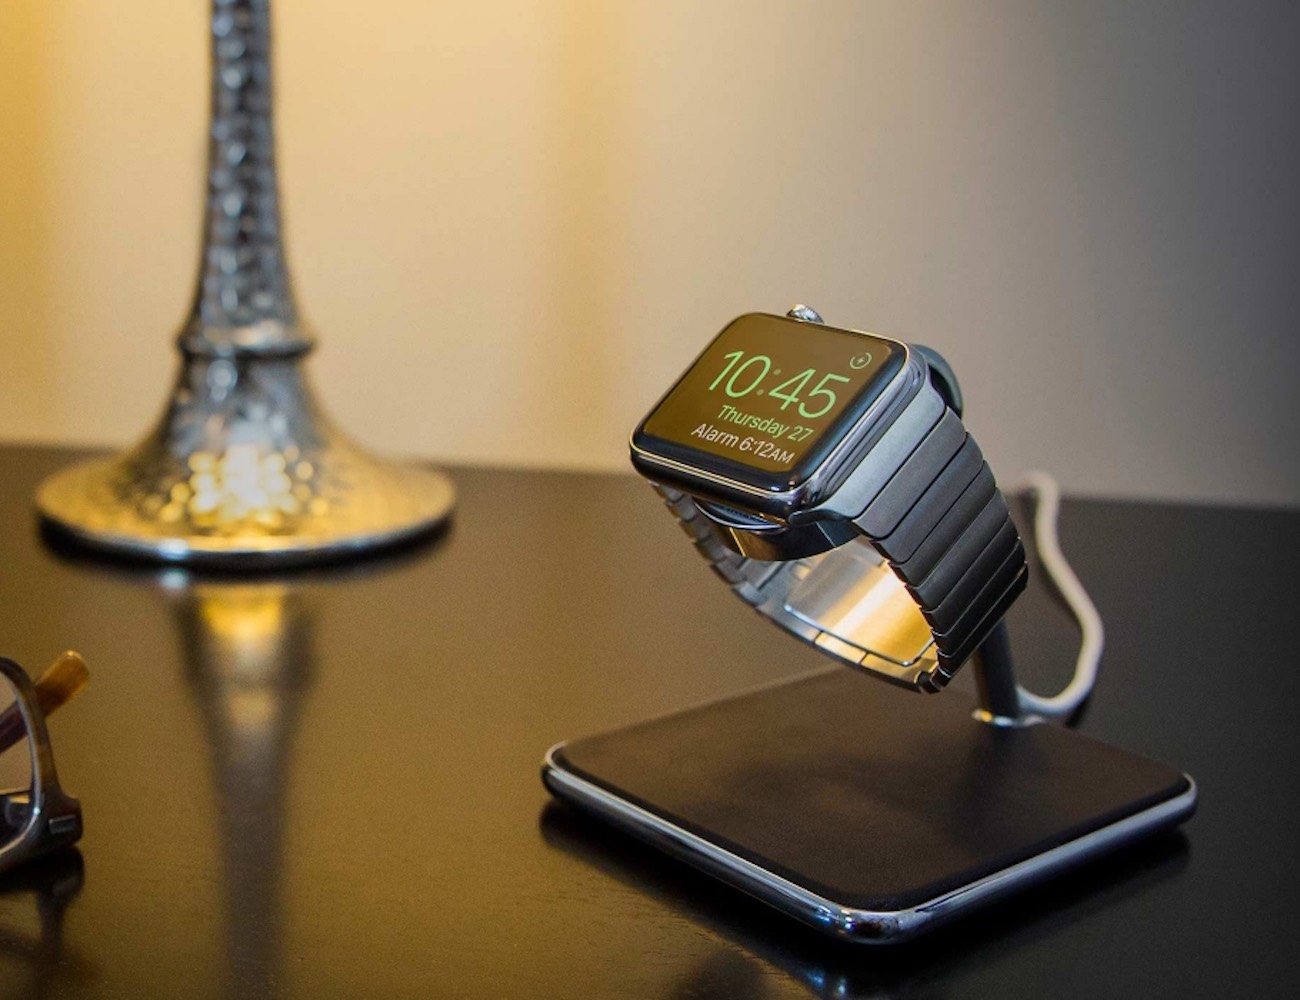 Forté for Apple Watch – Luxury Stand and Charging Dock by Twelve South